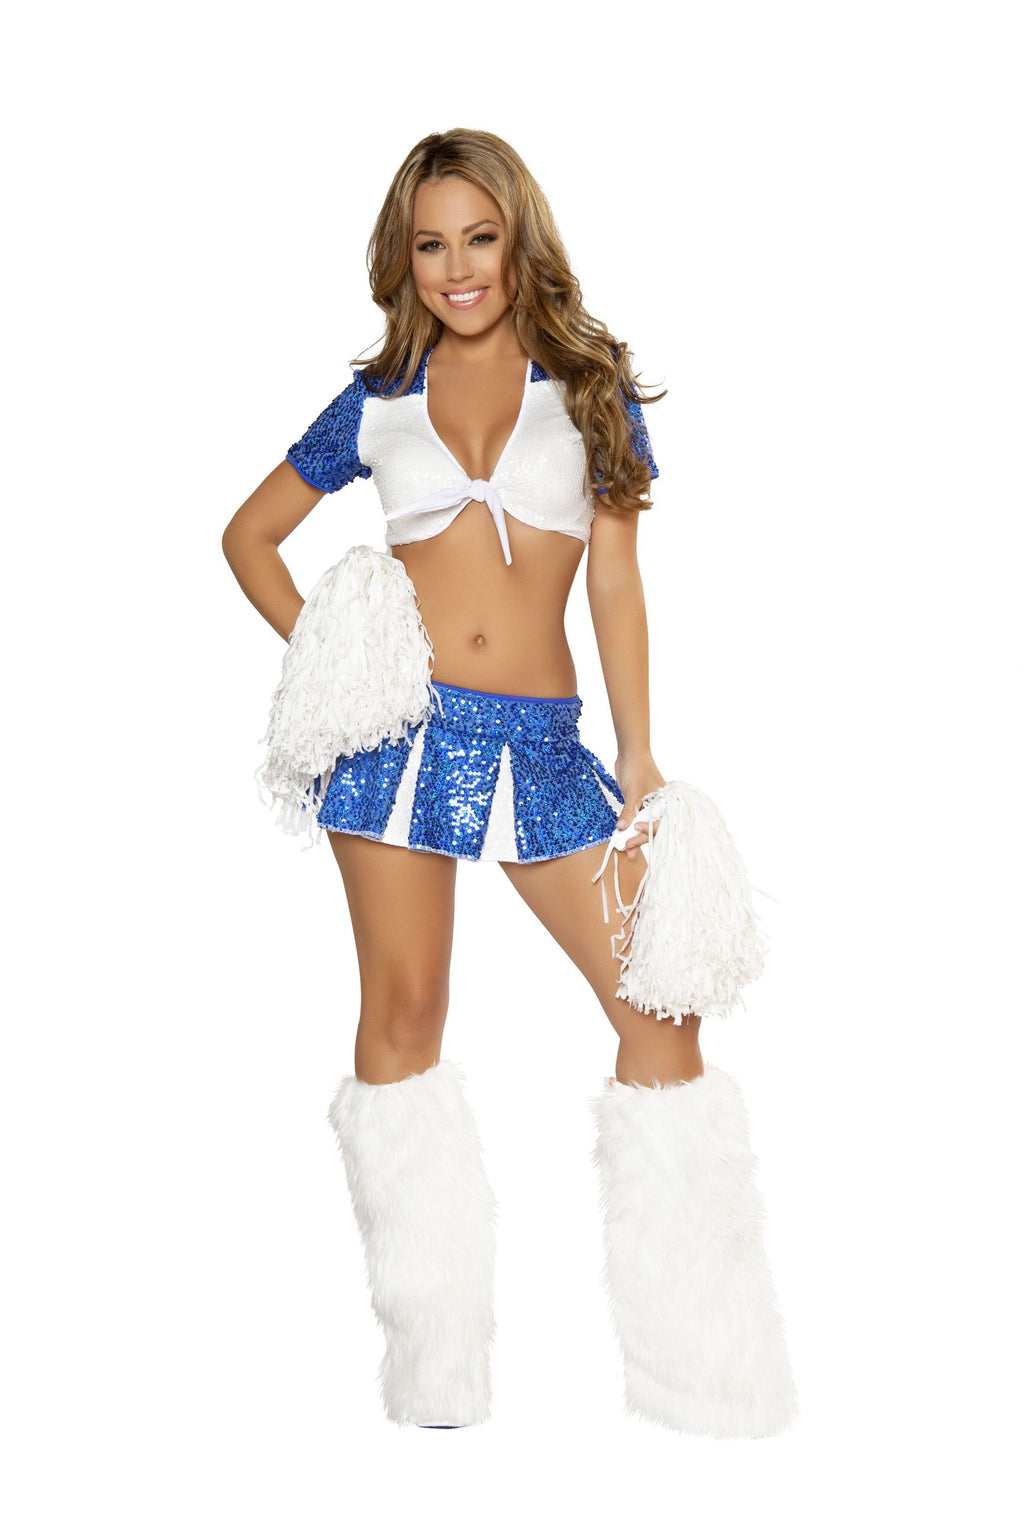 3-Piece-Sexy-High-School-Cheerleader-Crop-Top-&-Pleated-Skirt-Costume